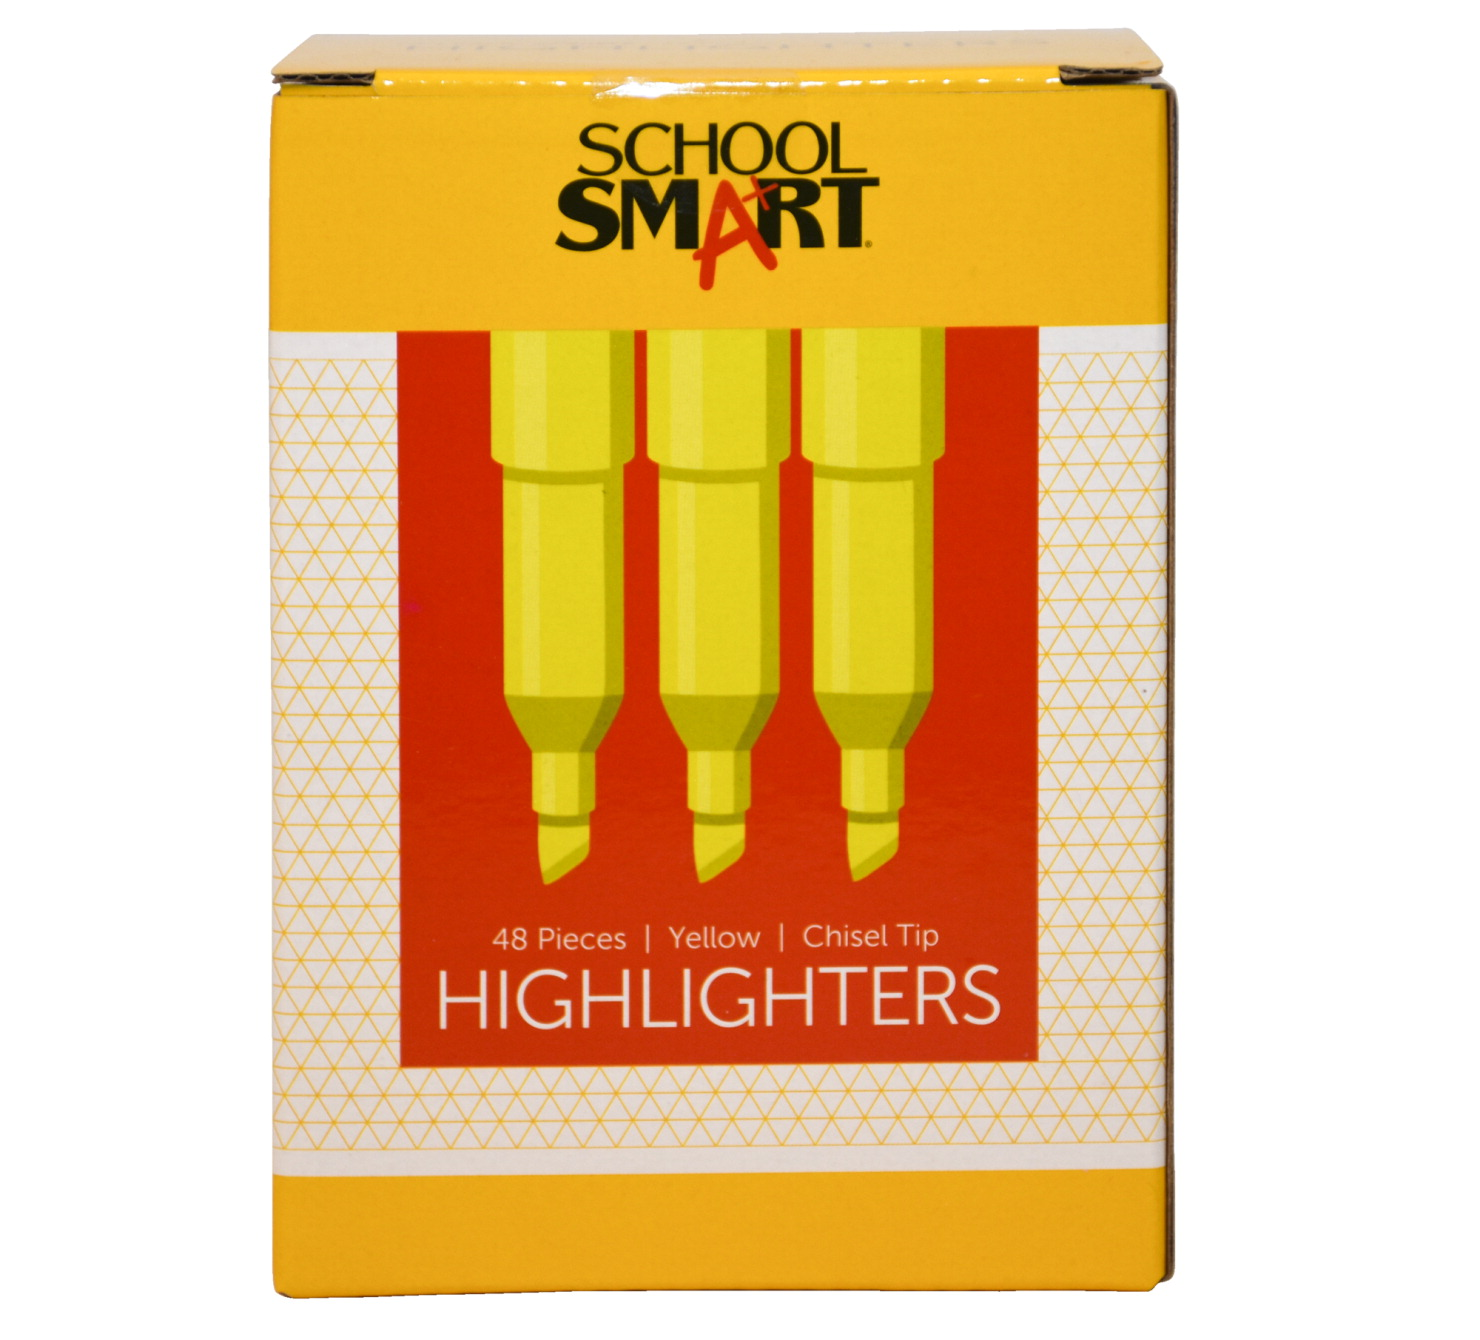 School Smart Highlighter, Chisel Tip, Pen Style, Yellow, Pack of 48